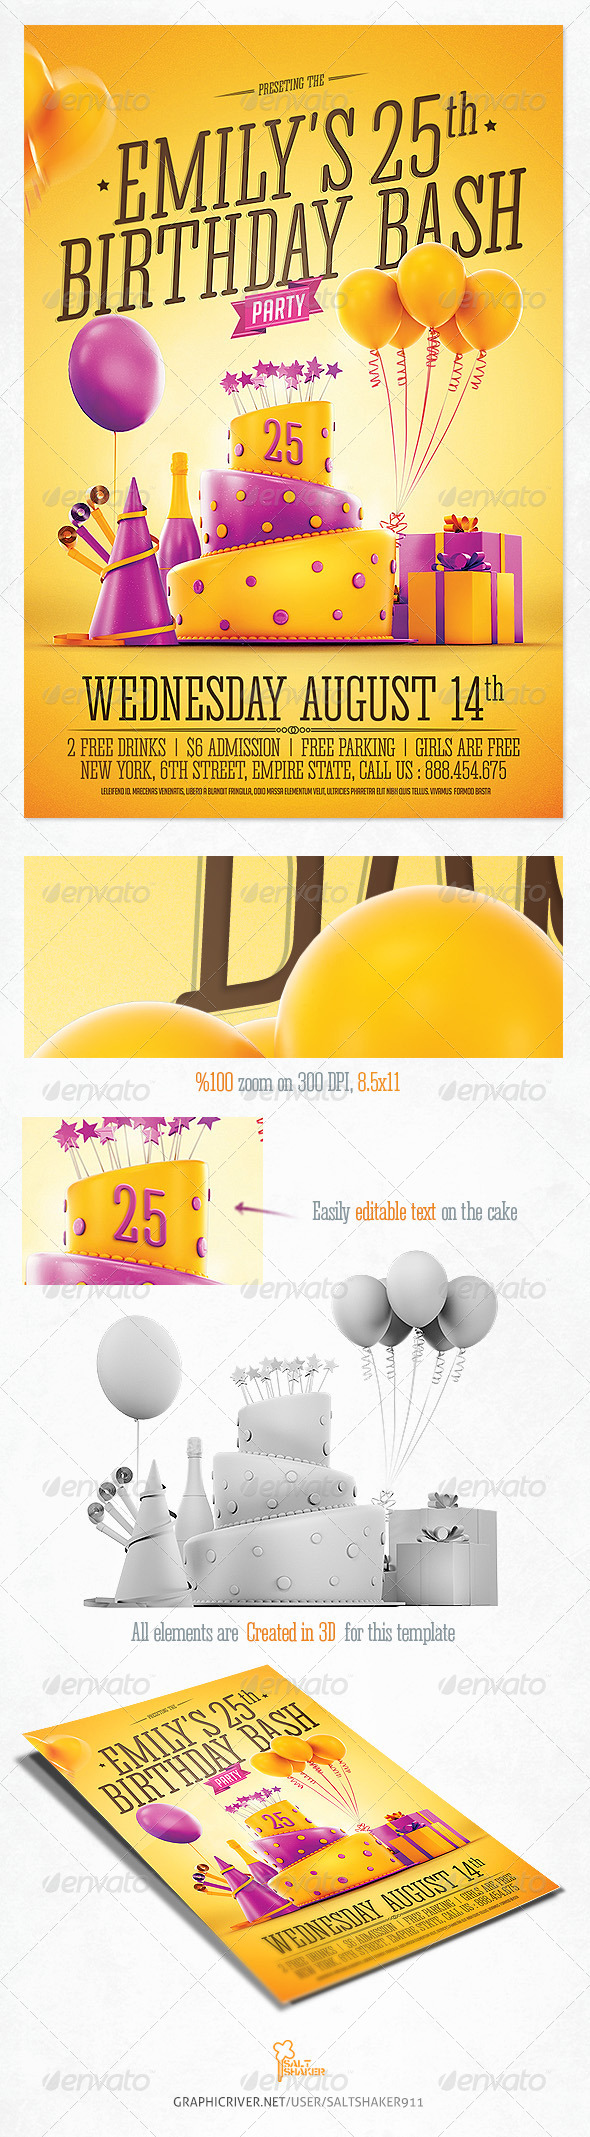 GraphicRiver Birthday Party Invitation Flyer 8395185